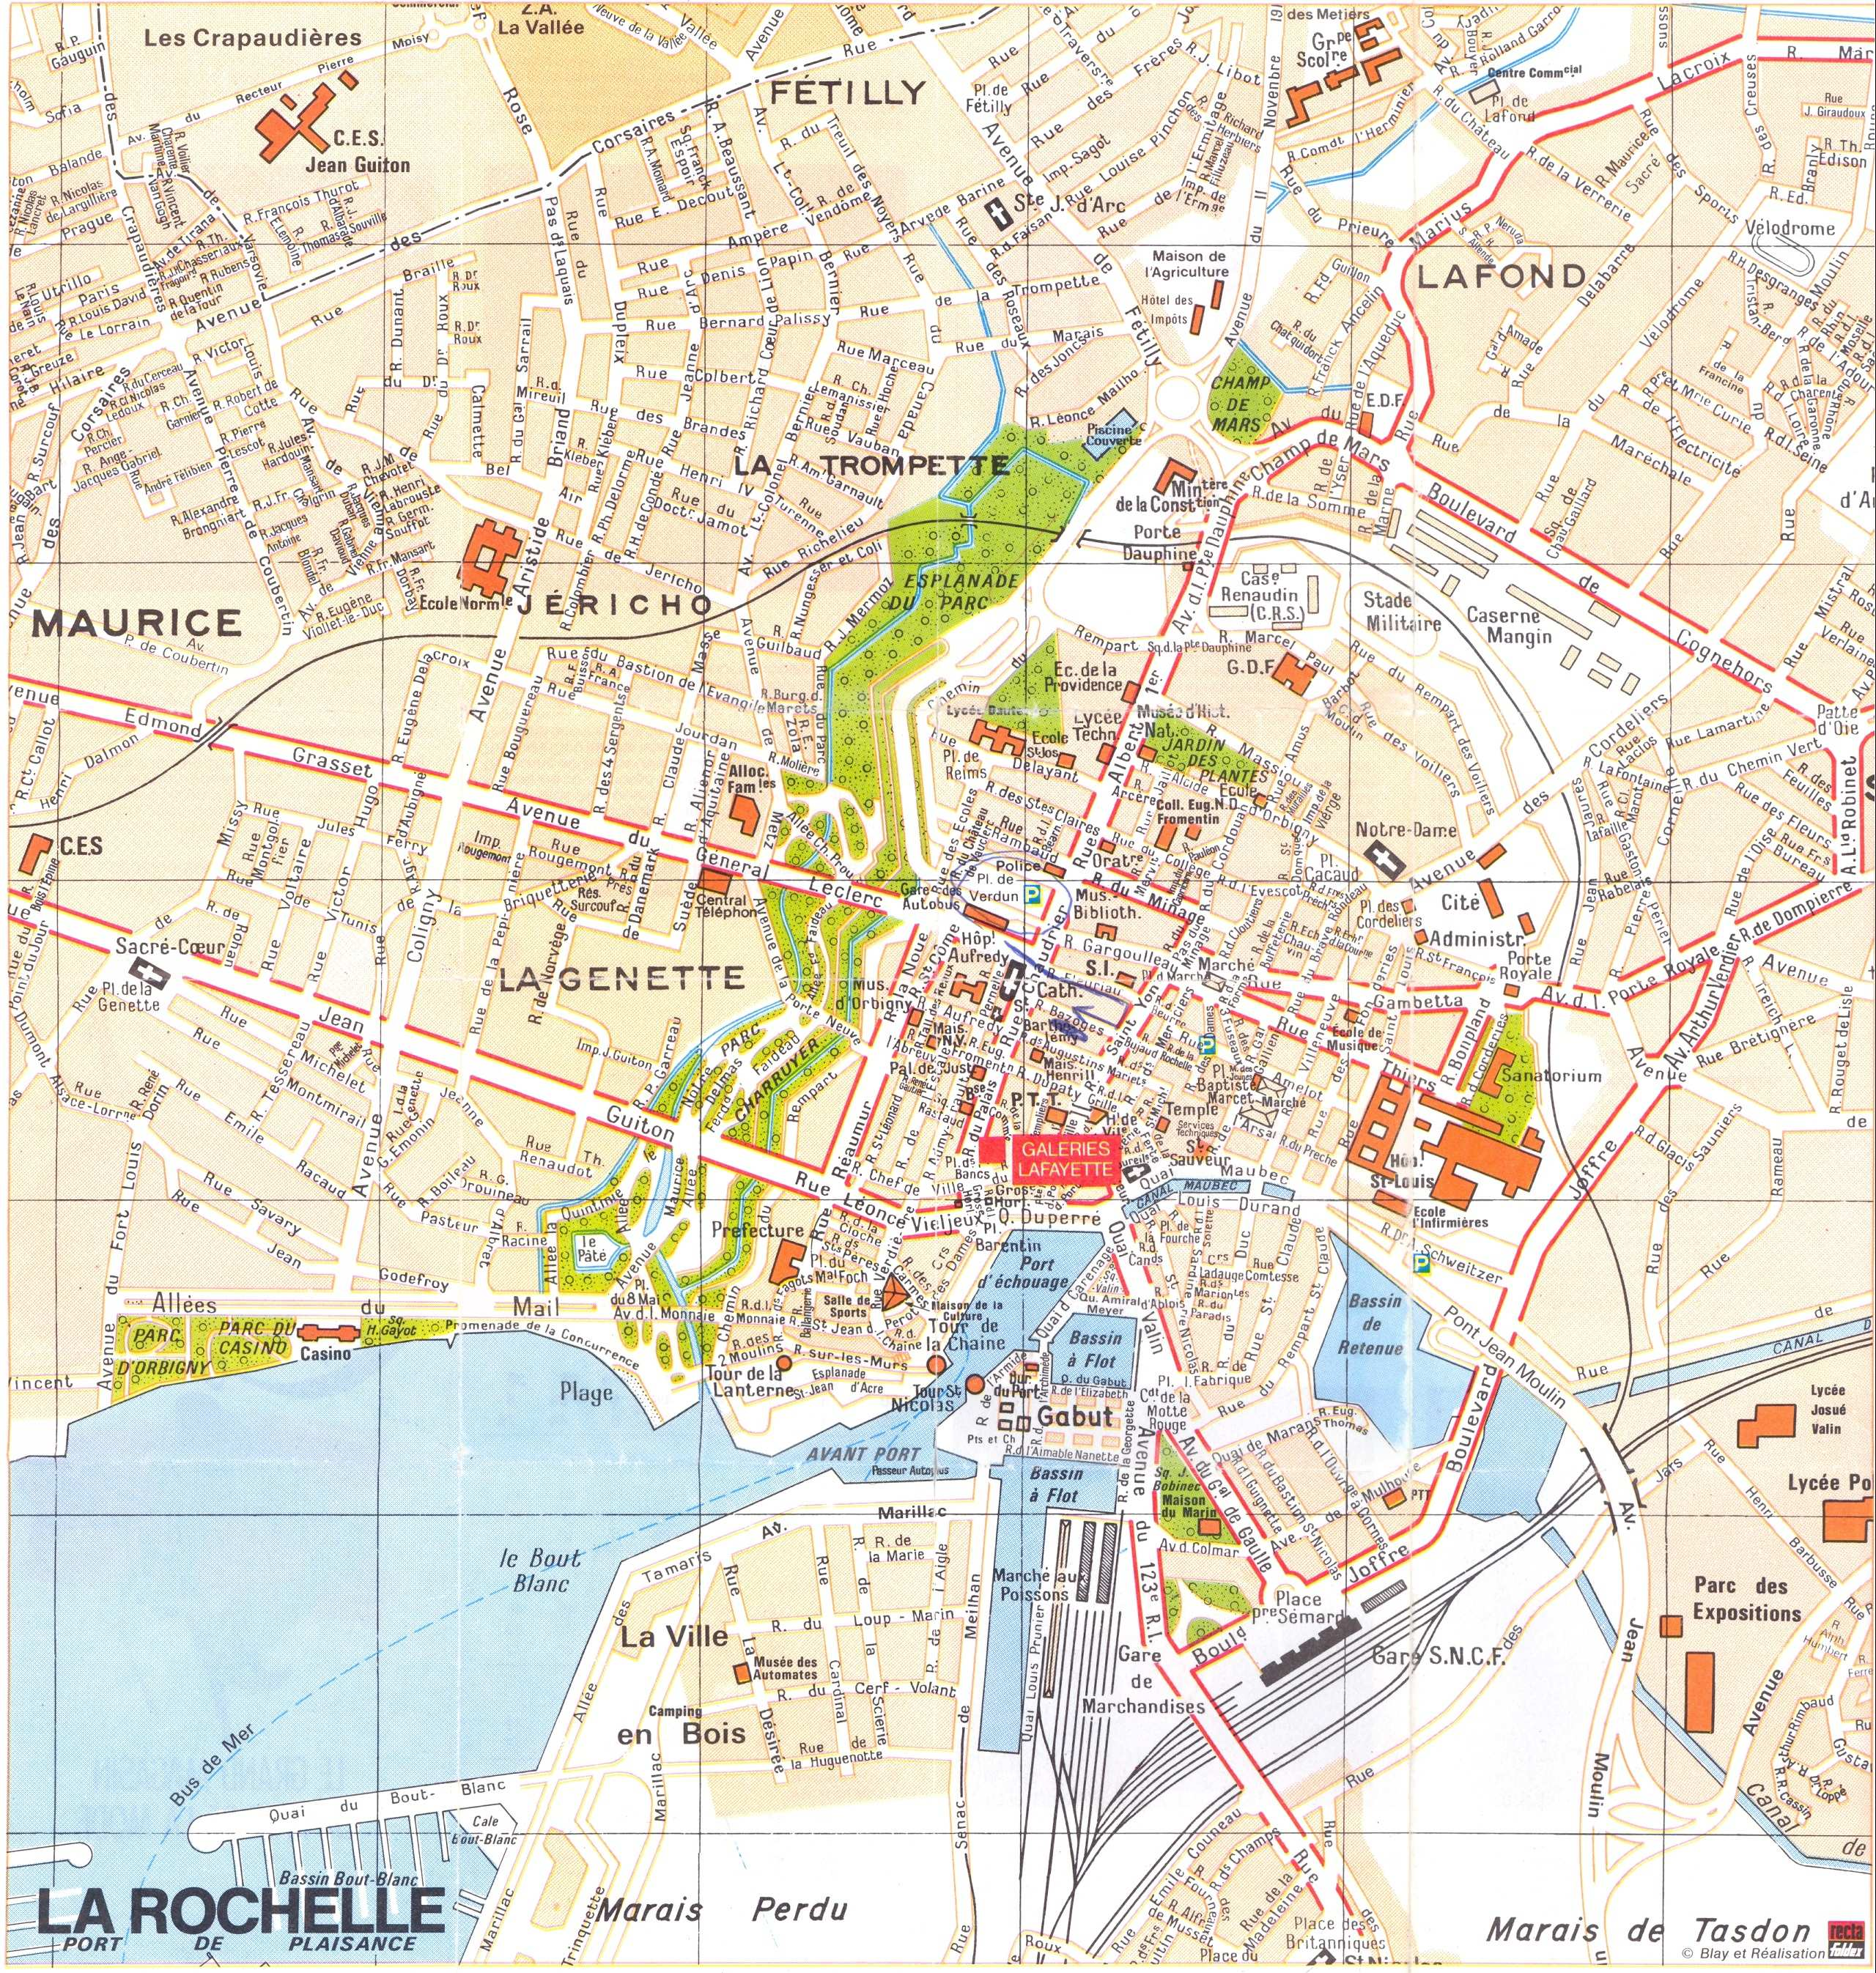 Toulouse Perpignan Bus Large La Rochelle Maps For Free Download And Print | High